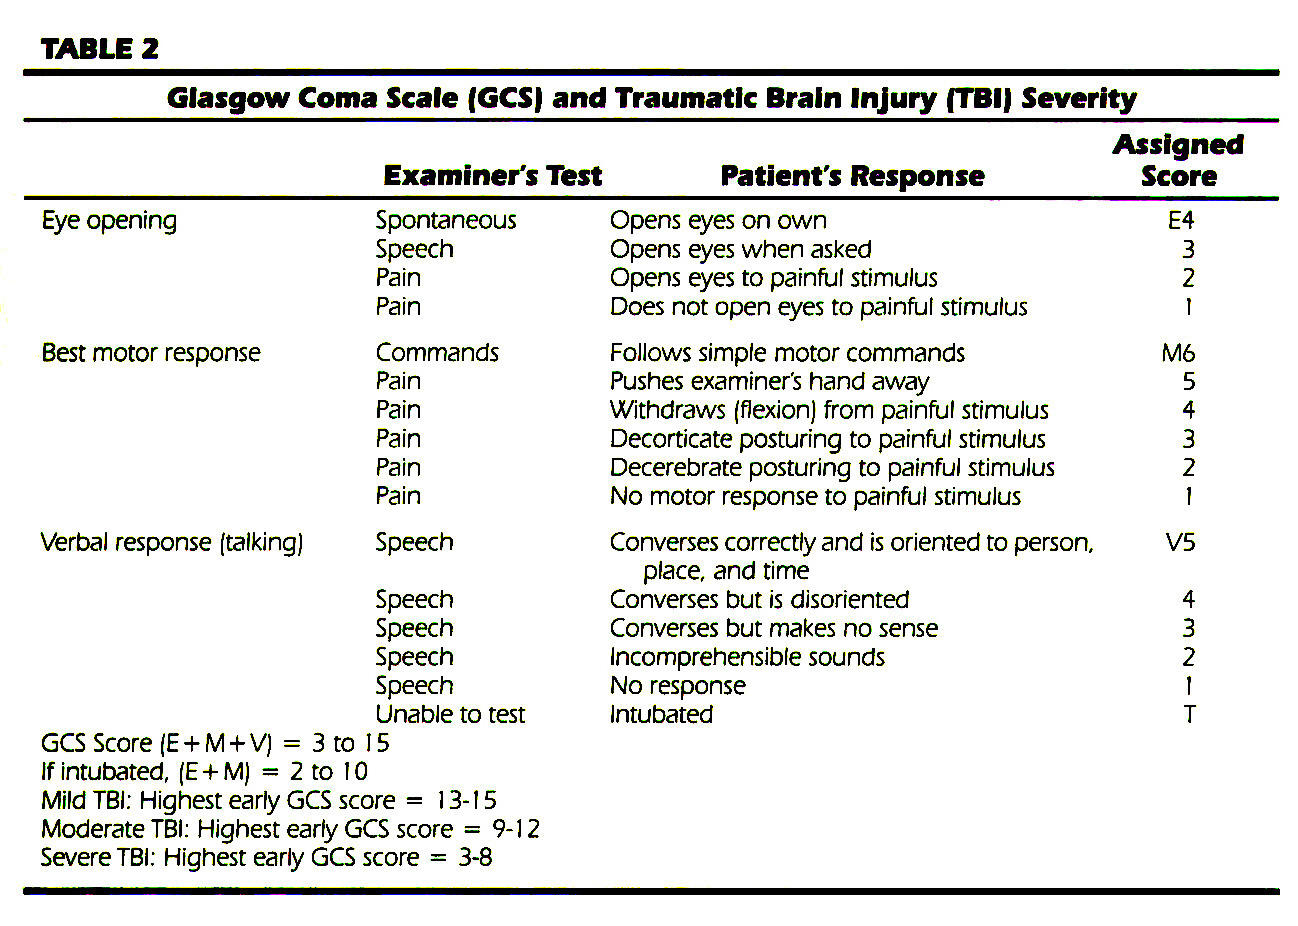 TABLE 2Glasgow Coma Scale (GCS) and Traumatic Brain Injury (TBI) Severity